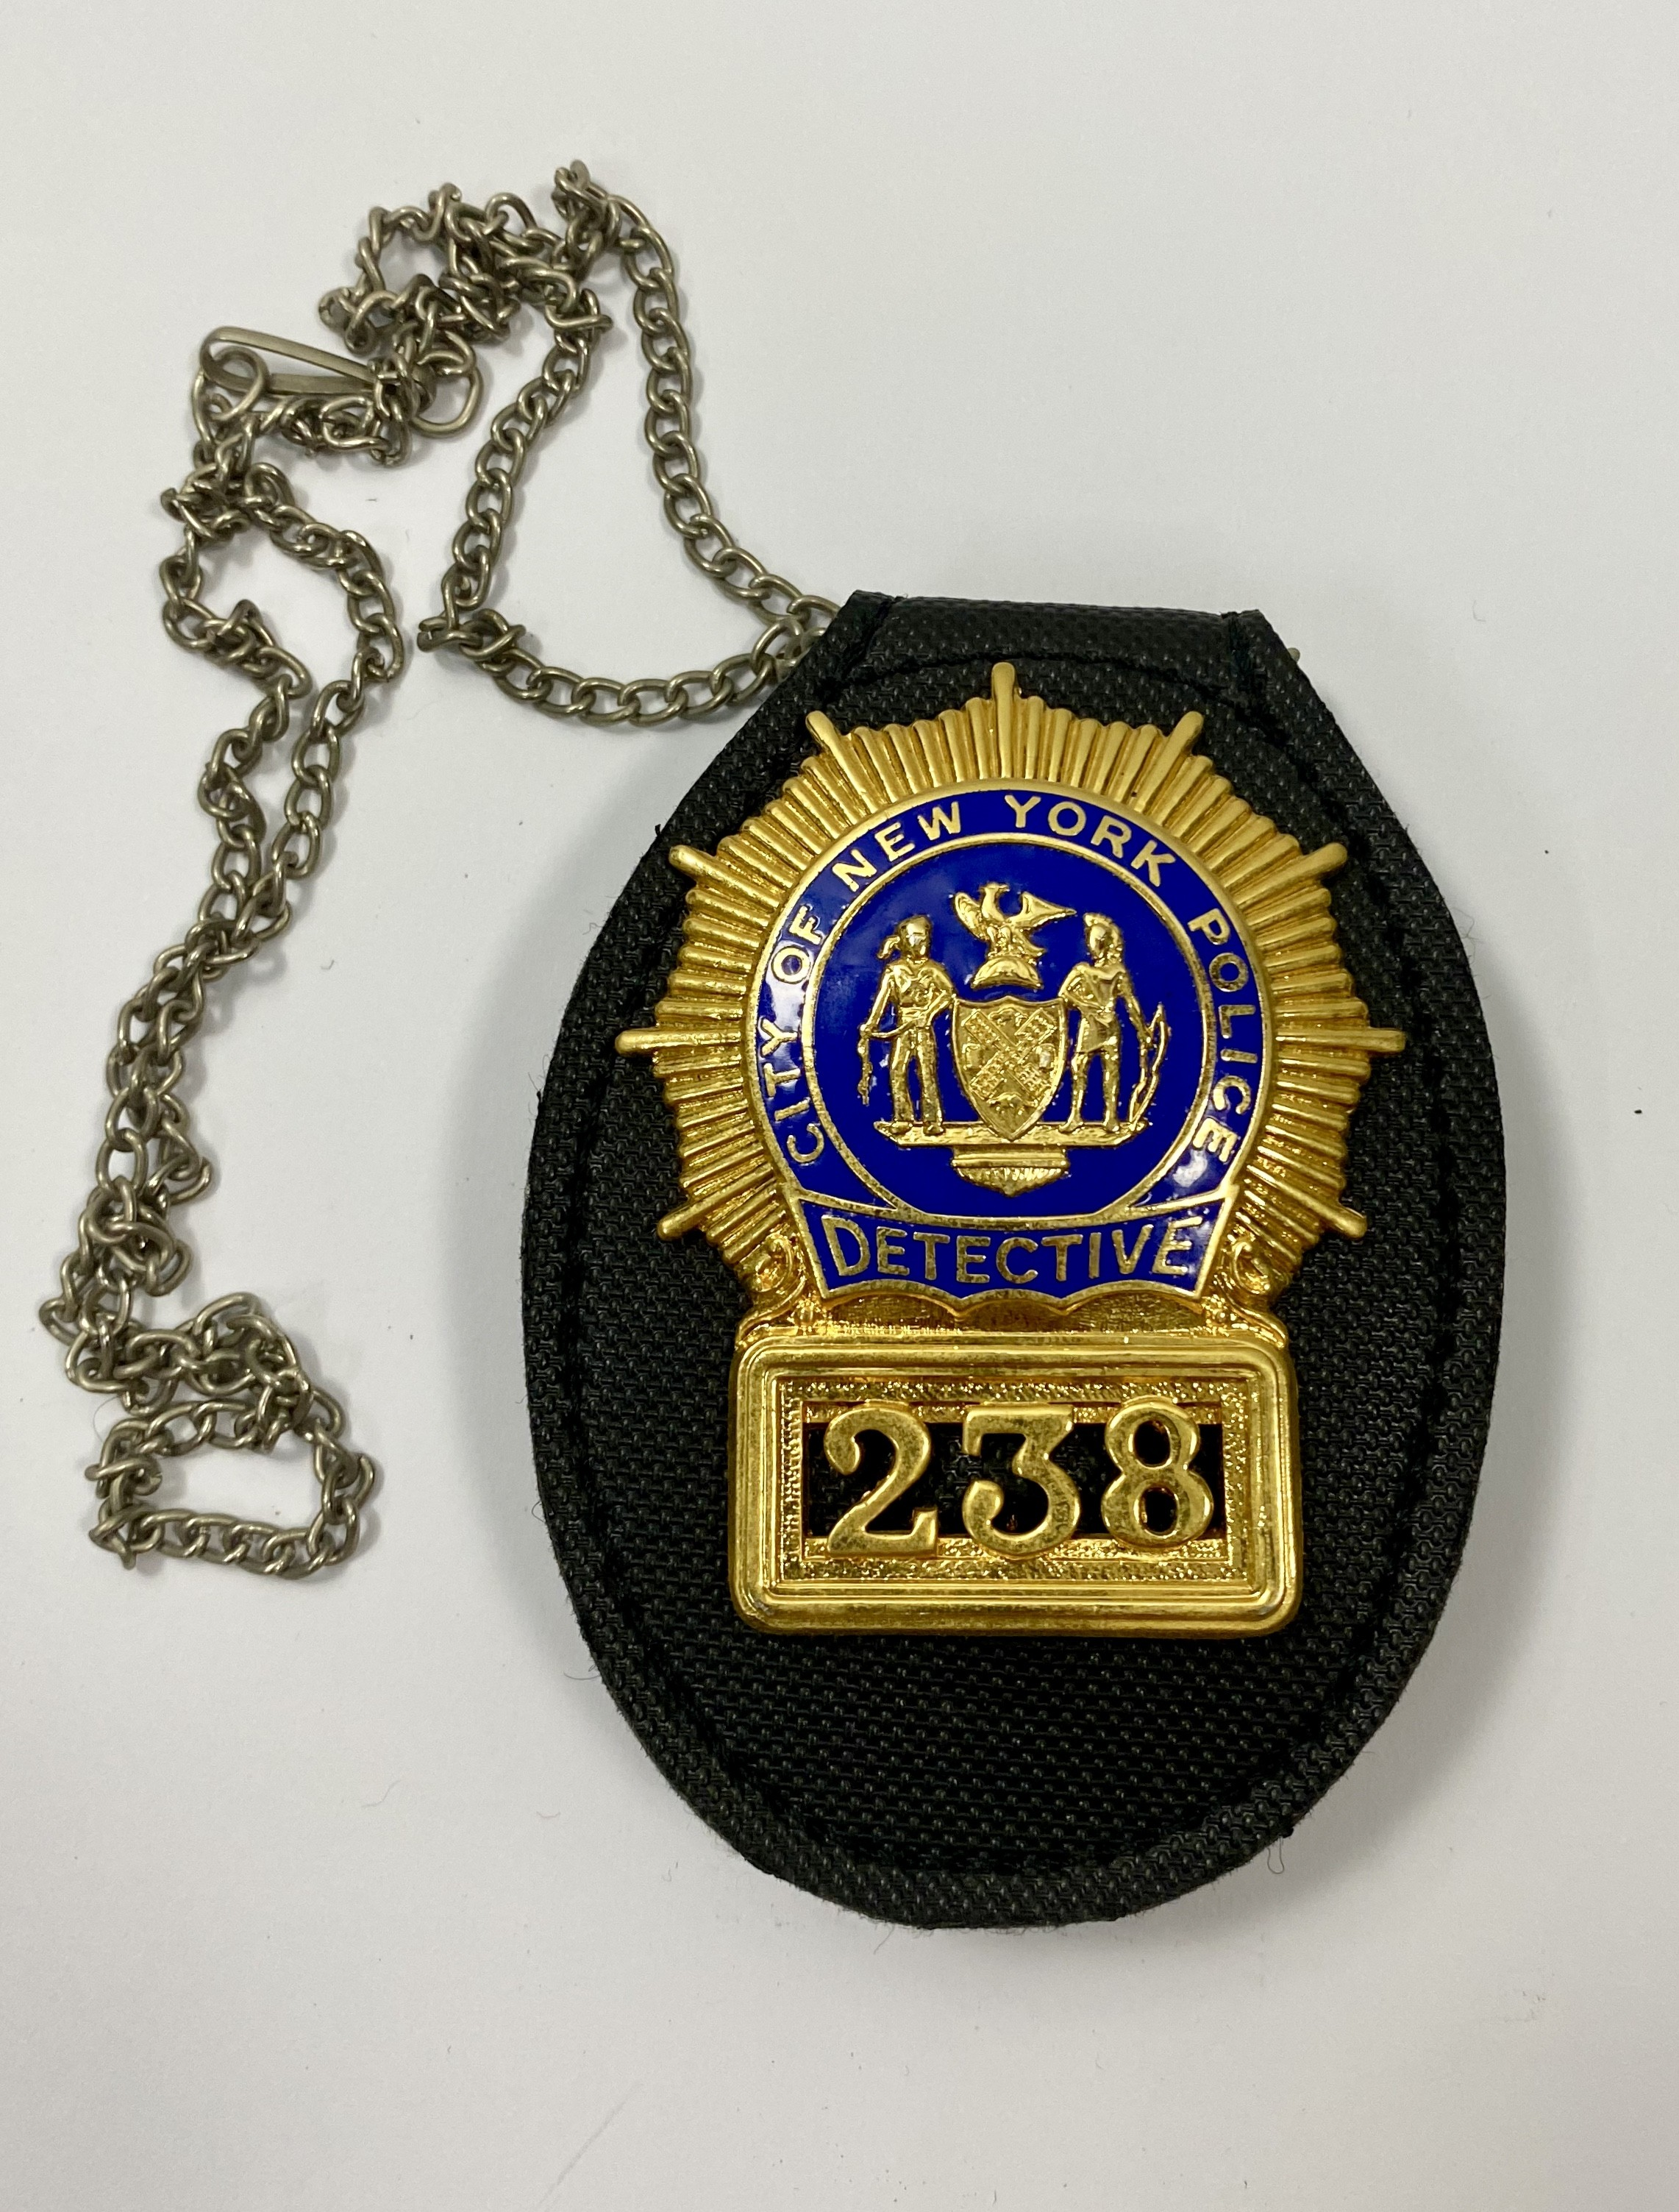 CUELLO-CITY OF NEW YORK POLICE DETECTIVE 238 POLICE BADGE